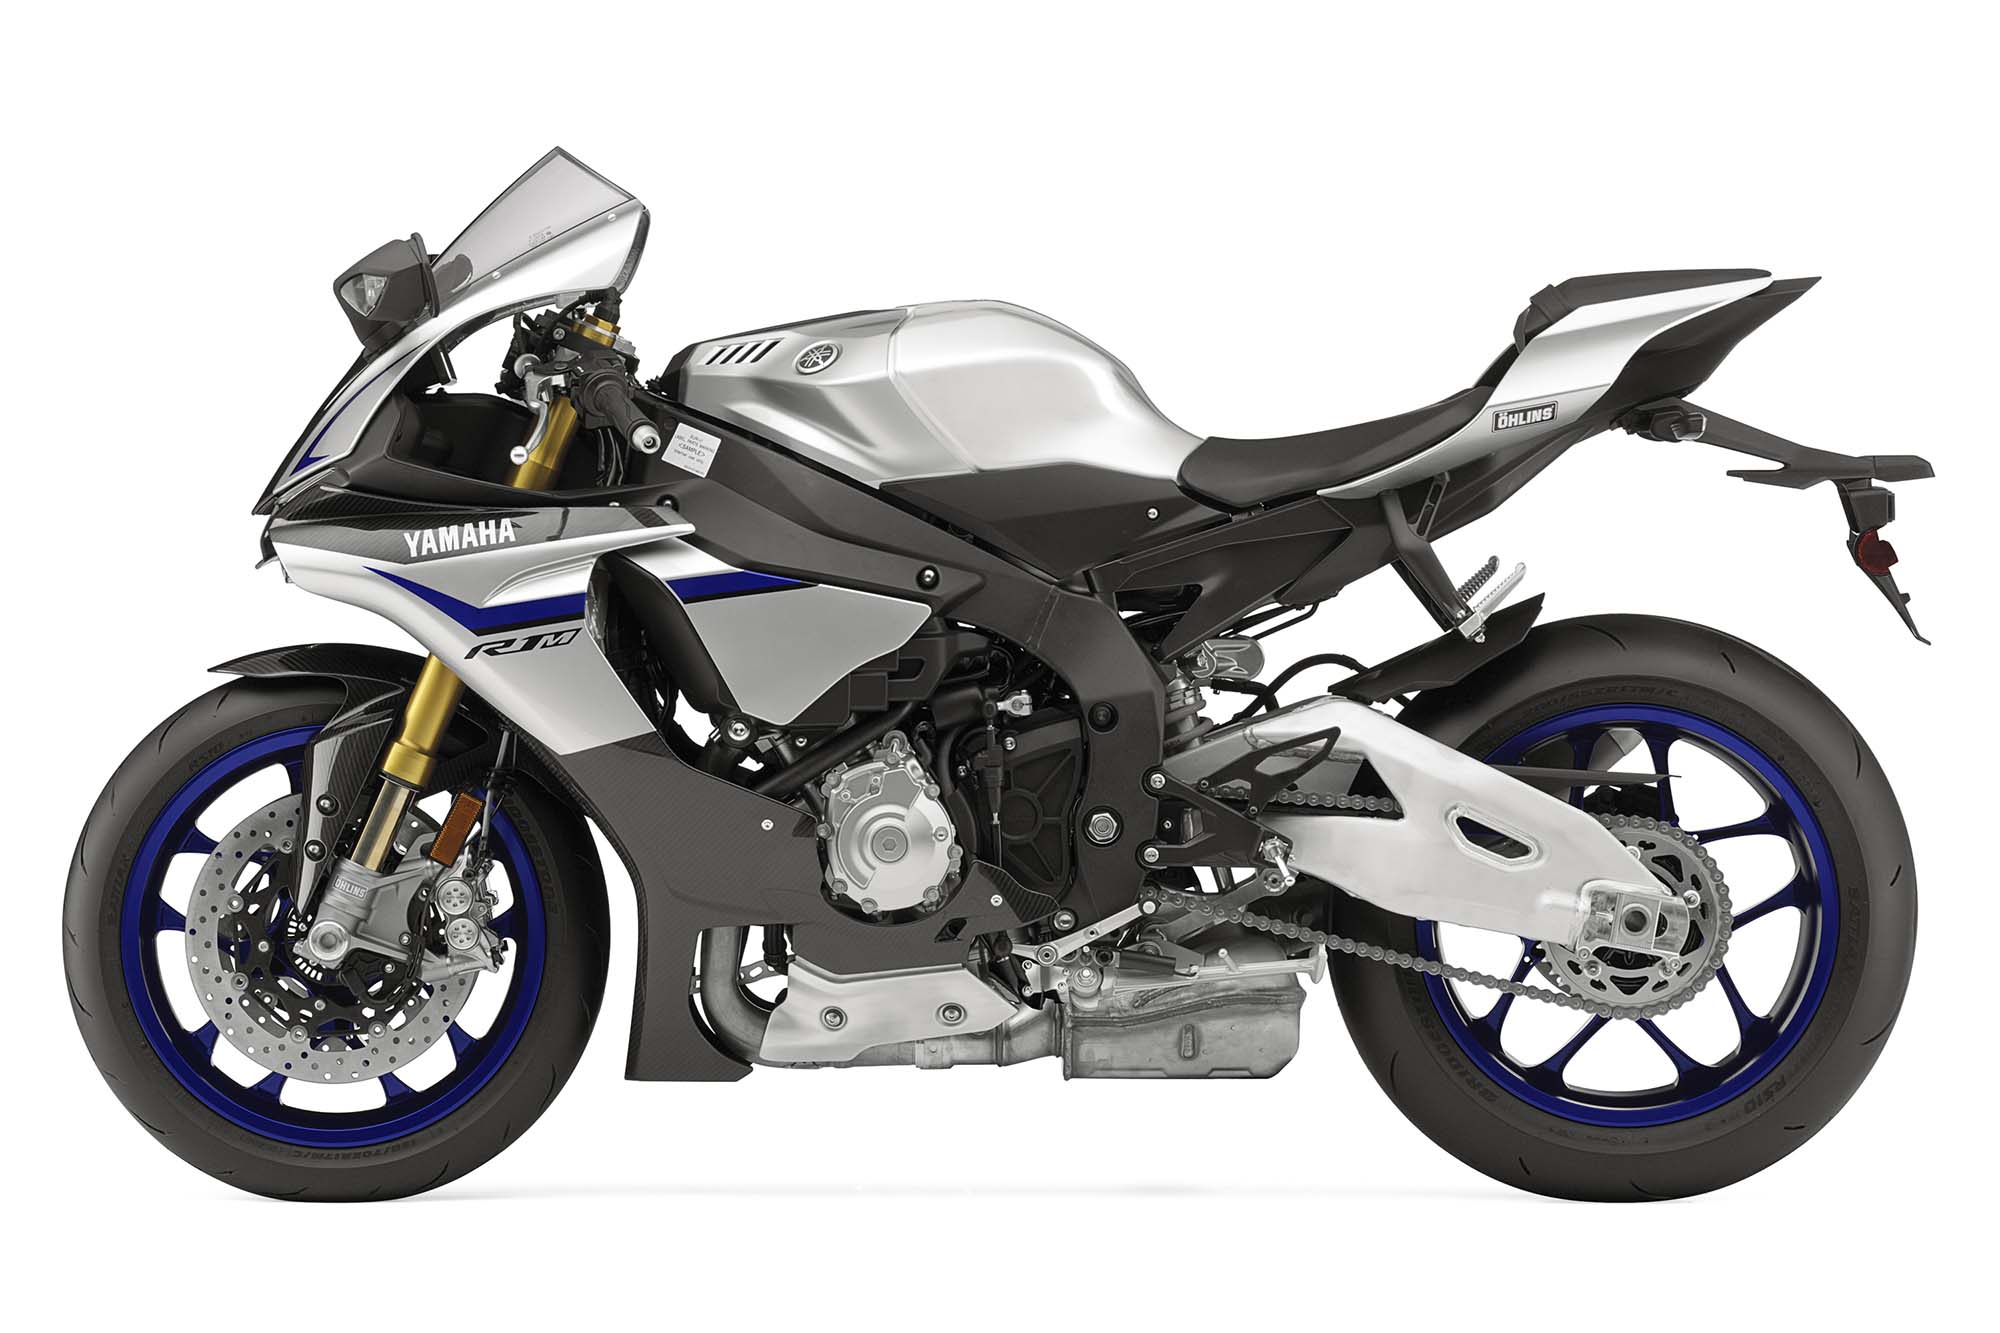 Yamaha YZF R1M Gets Homologated By The FIM